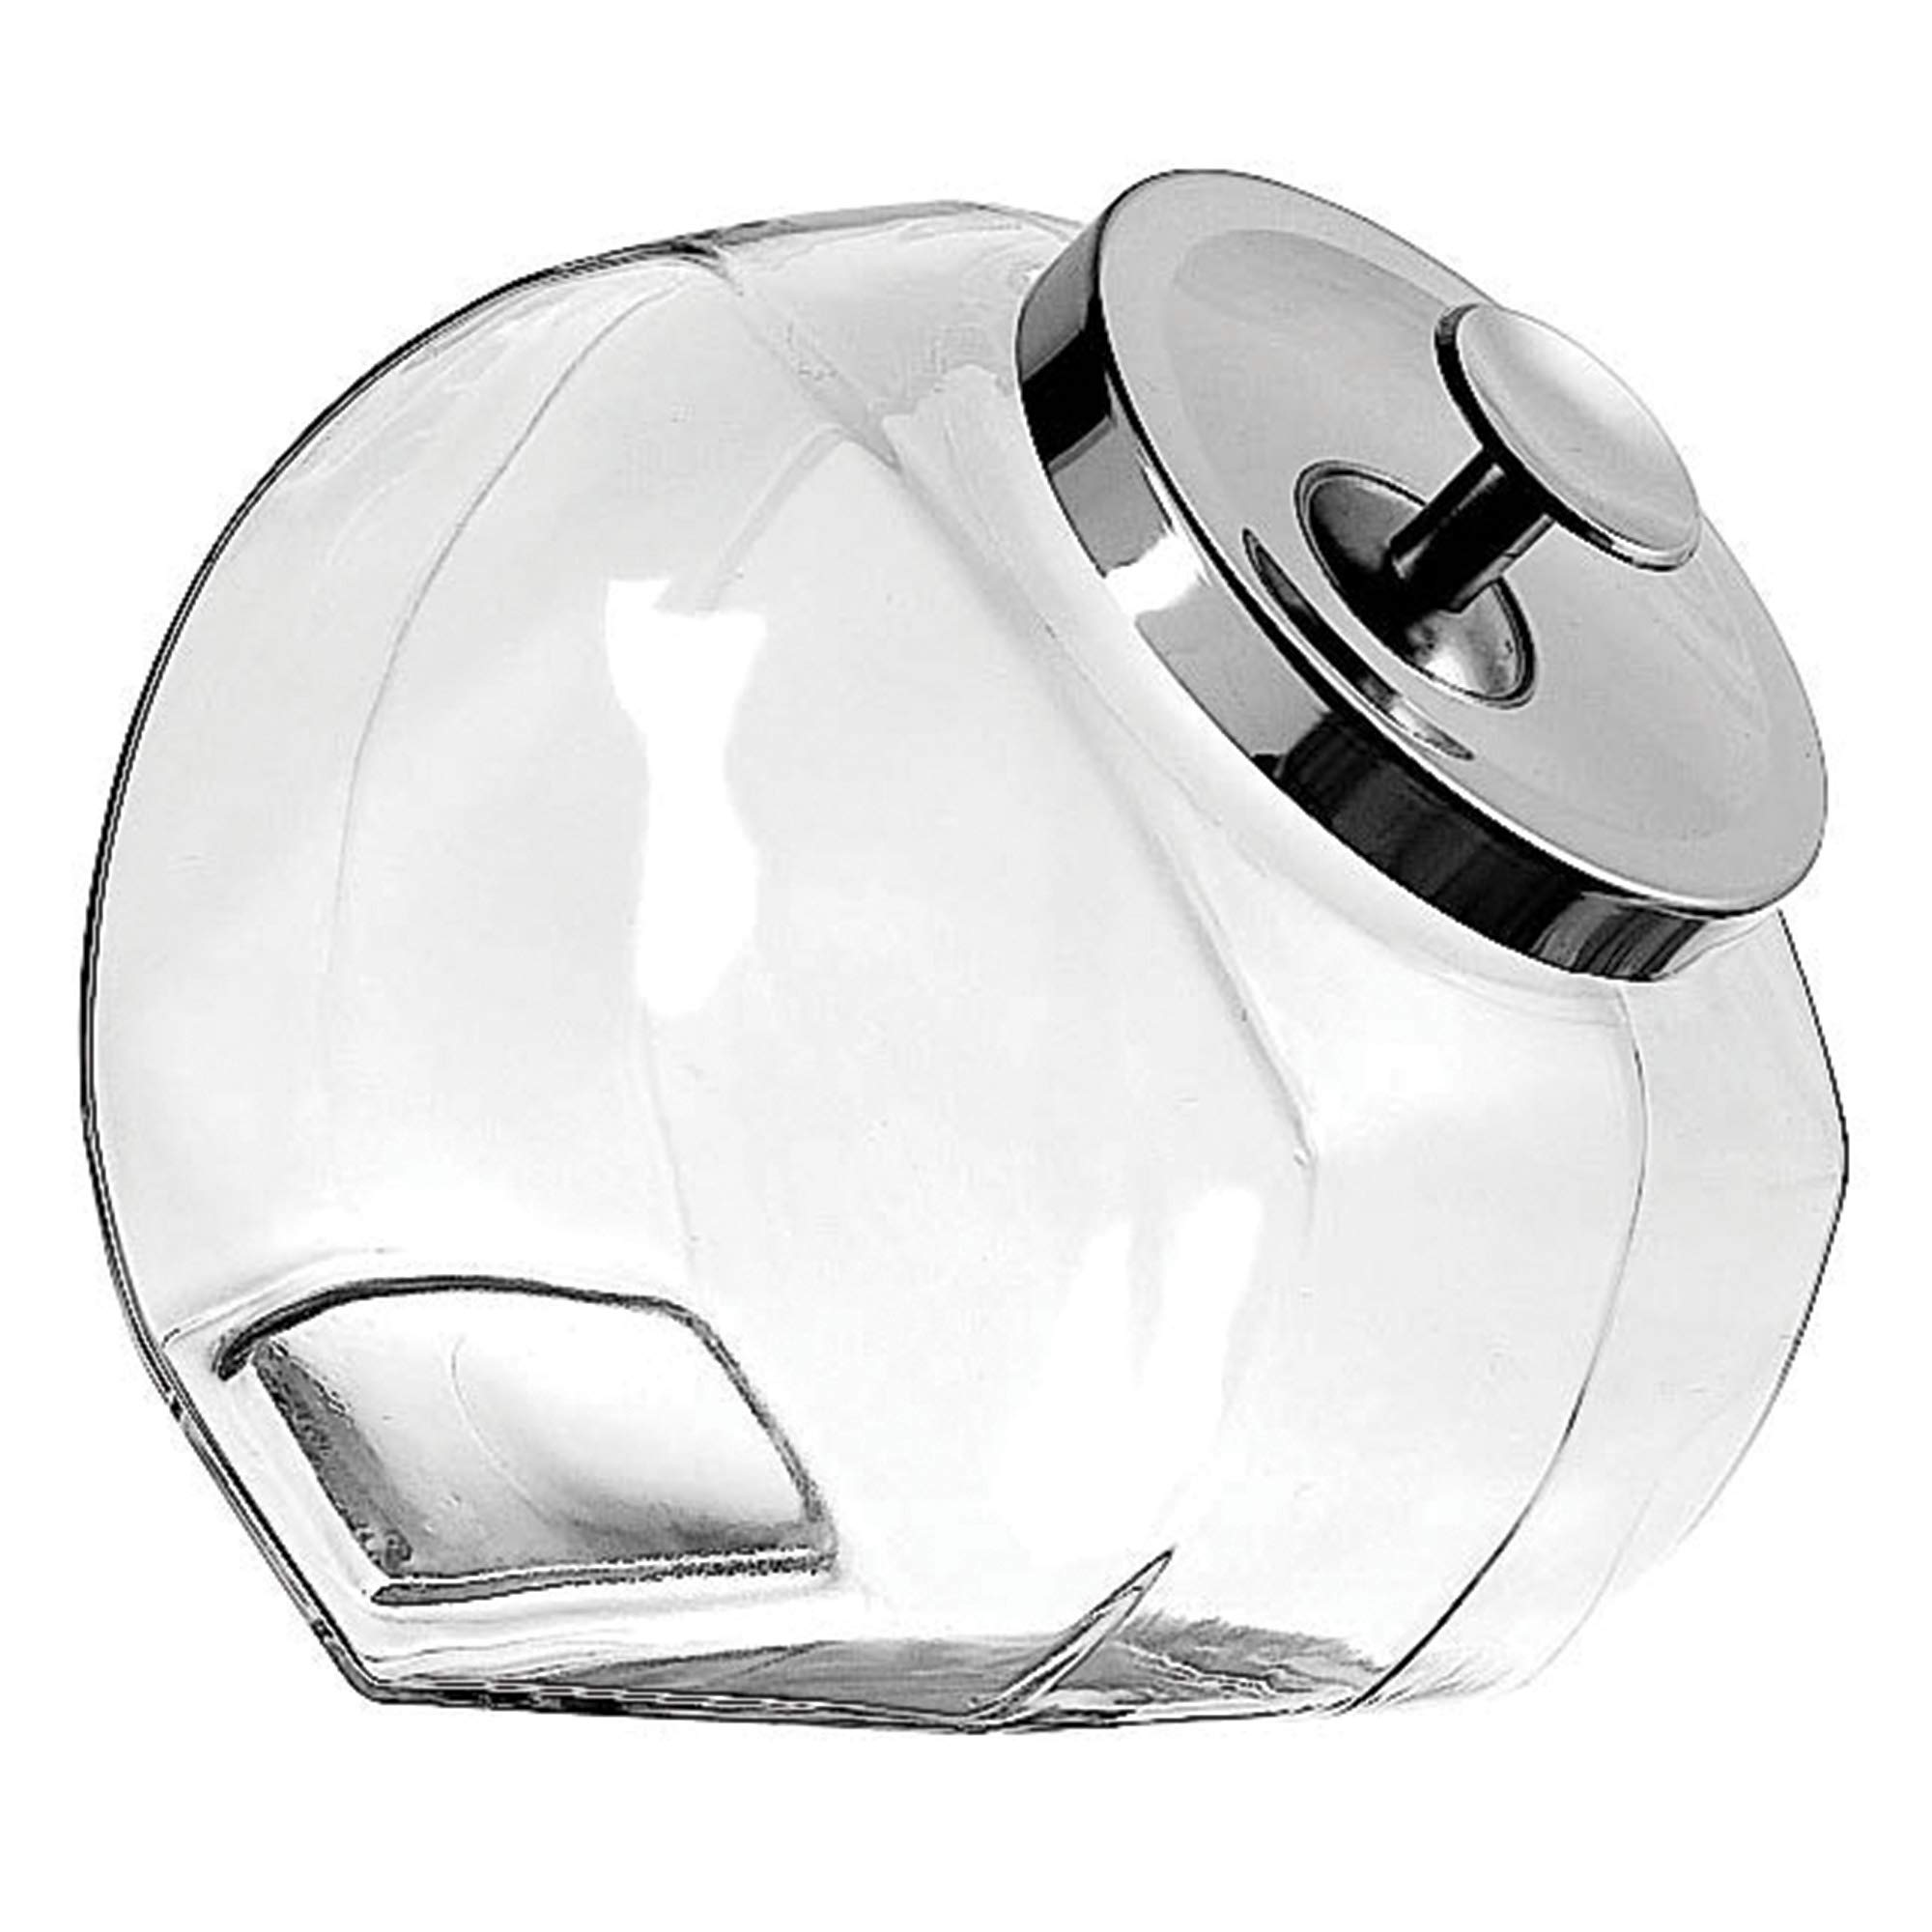 Anchor Hocking Not Available Anchor 77899 Penny Candy Jar, 1 Gallon, Clear by Anchor Hocking